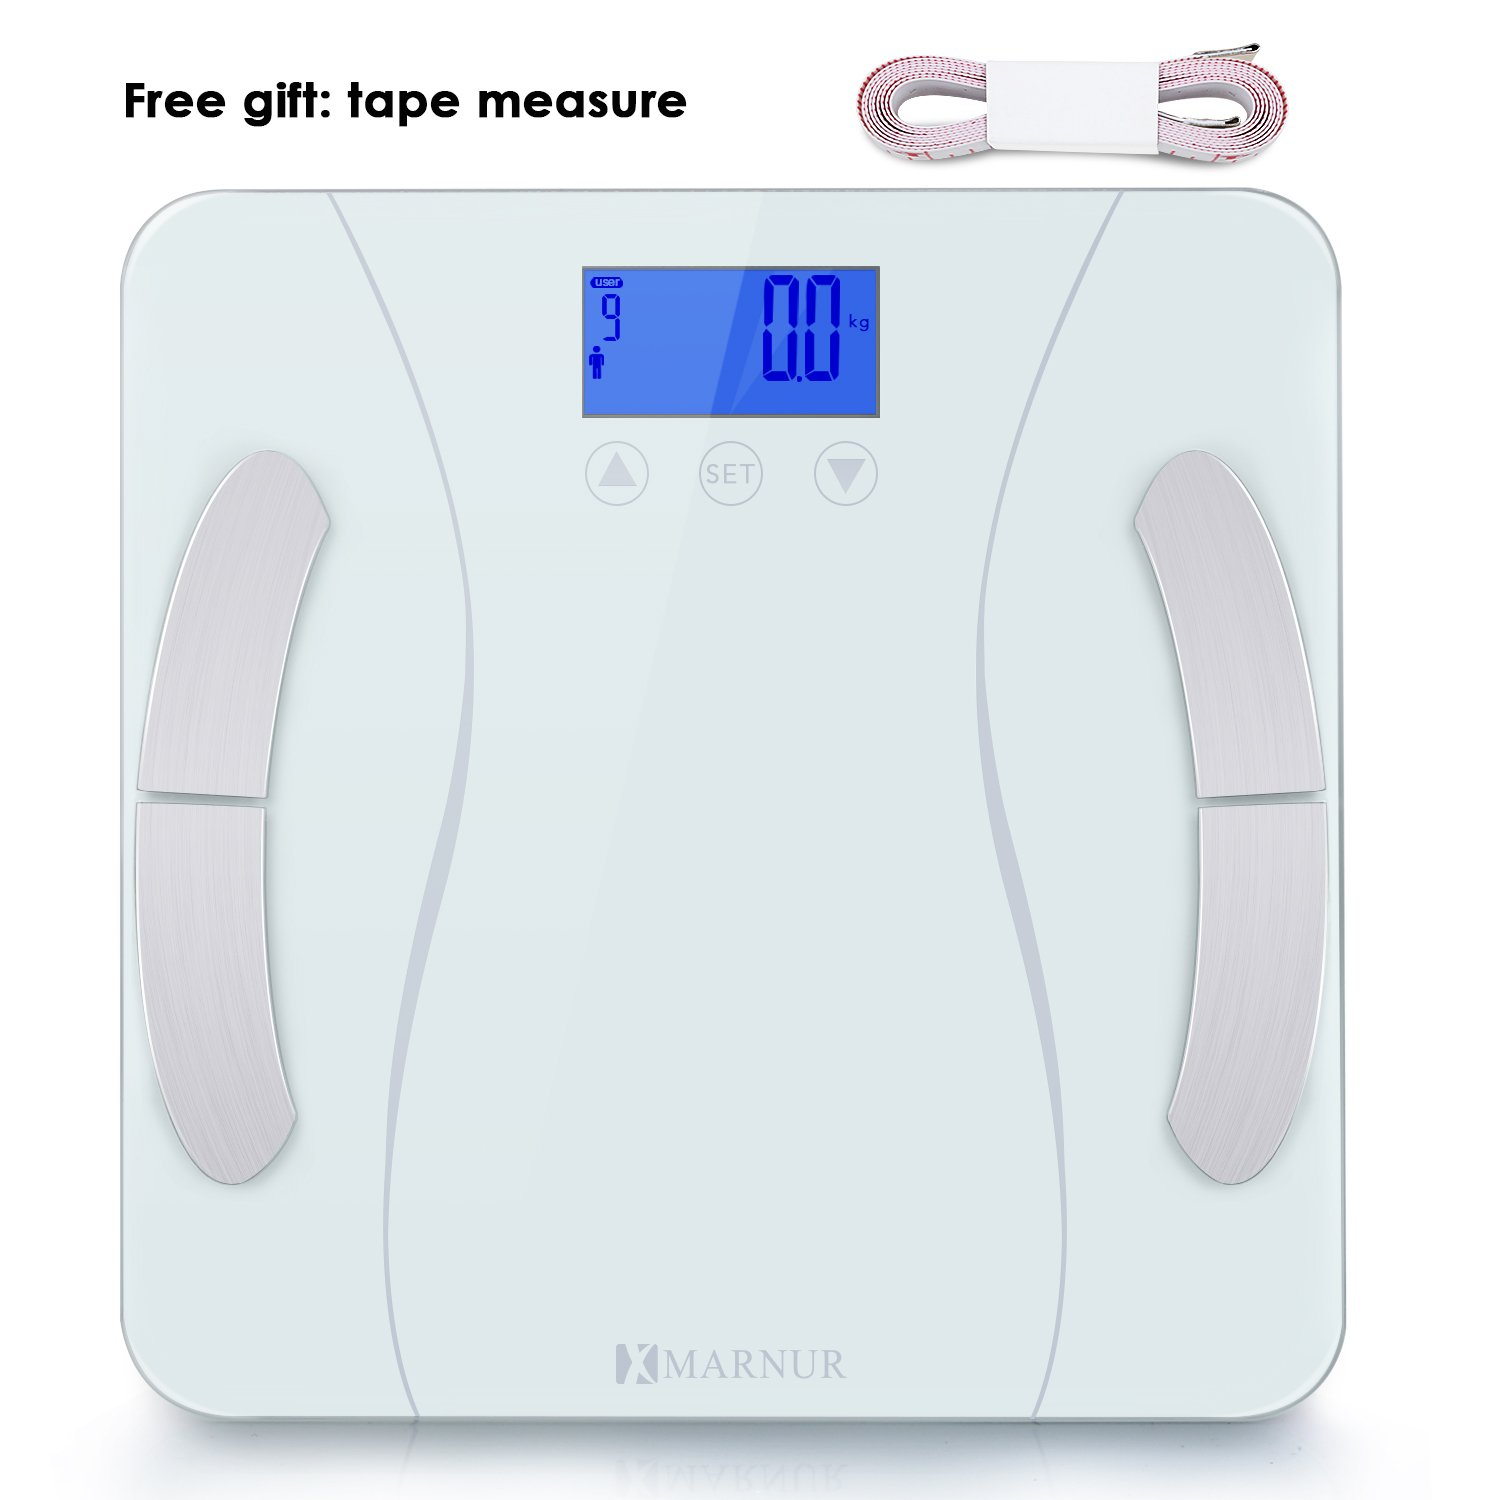 MARNUR Digital Body Fat Scale, Weight Scale, Bathroom Scale - with BIA Technology High-Precision Sensors and Tape Measure for Body Composition Analysis and Healthy Life